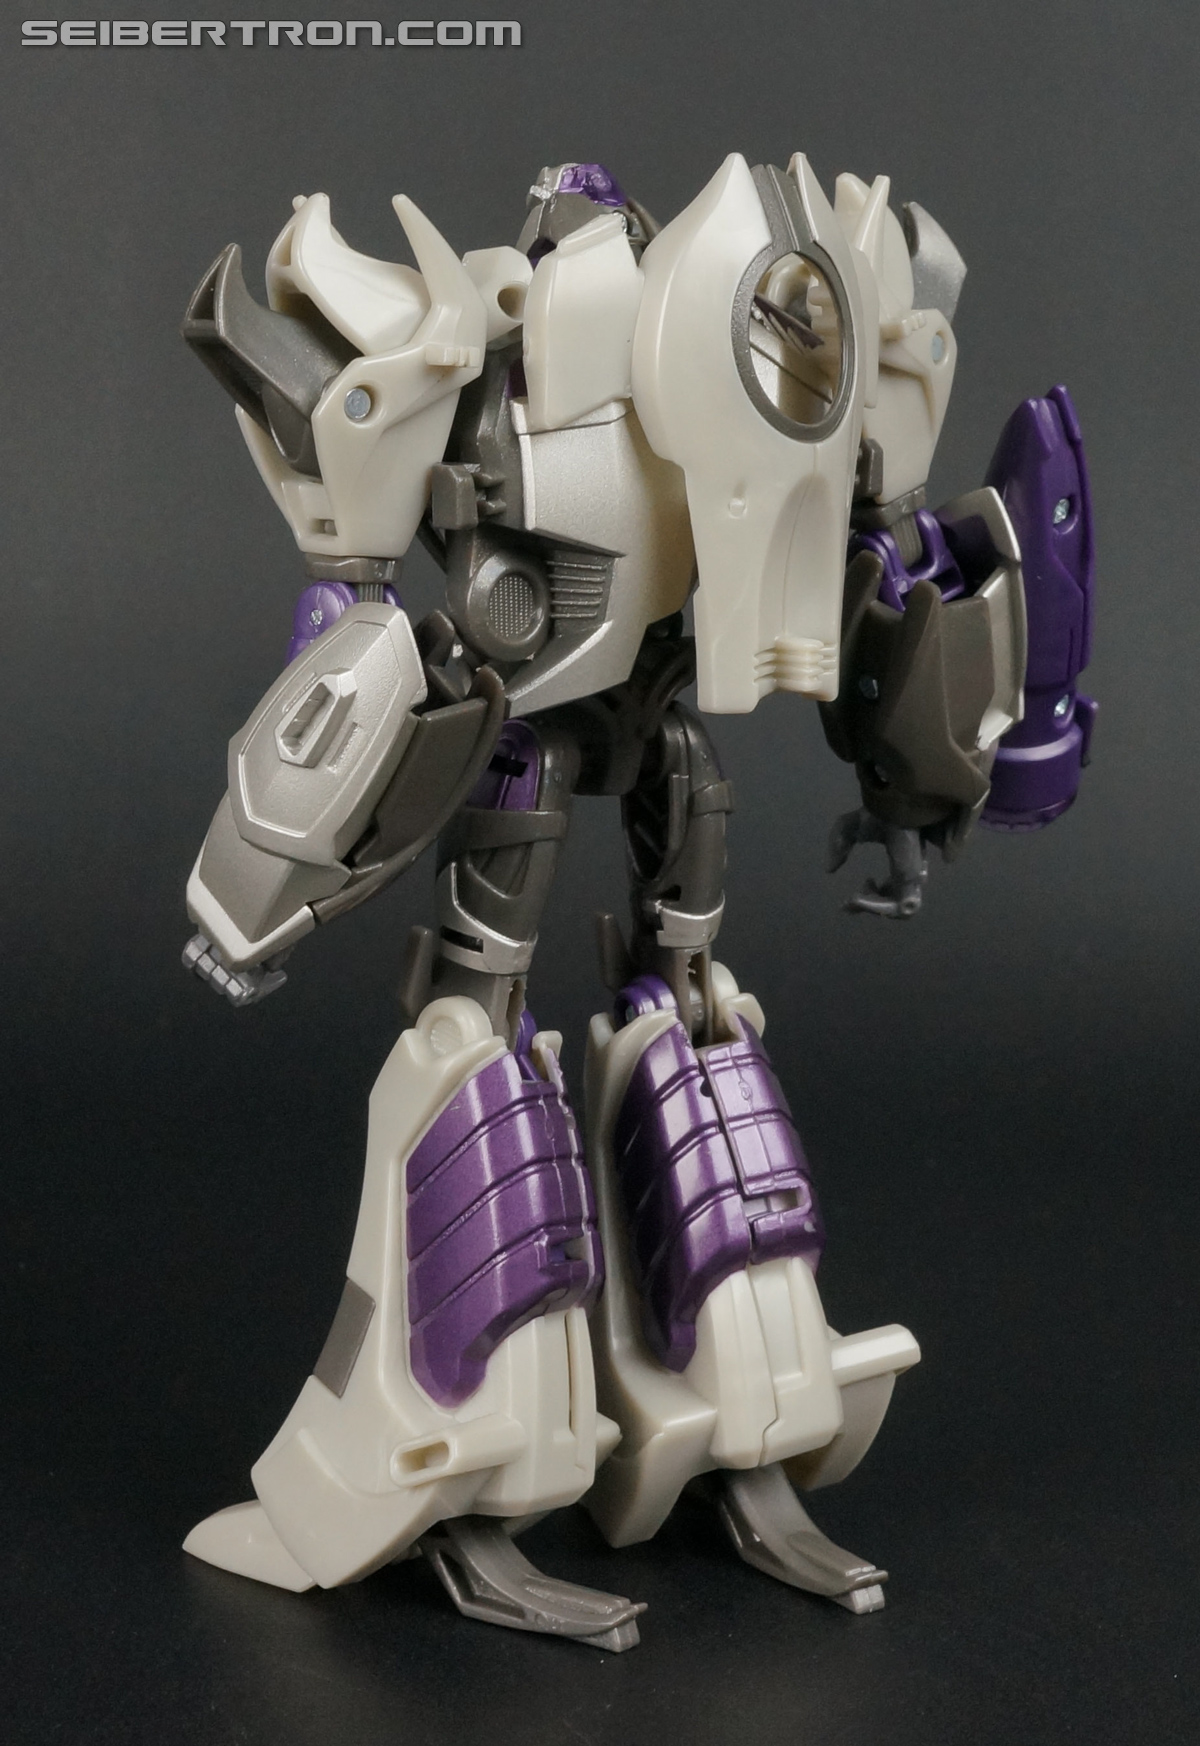 Transformers First Edition Megatron (Image #65 of 165)